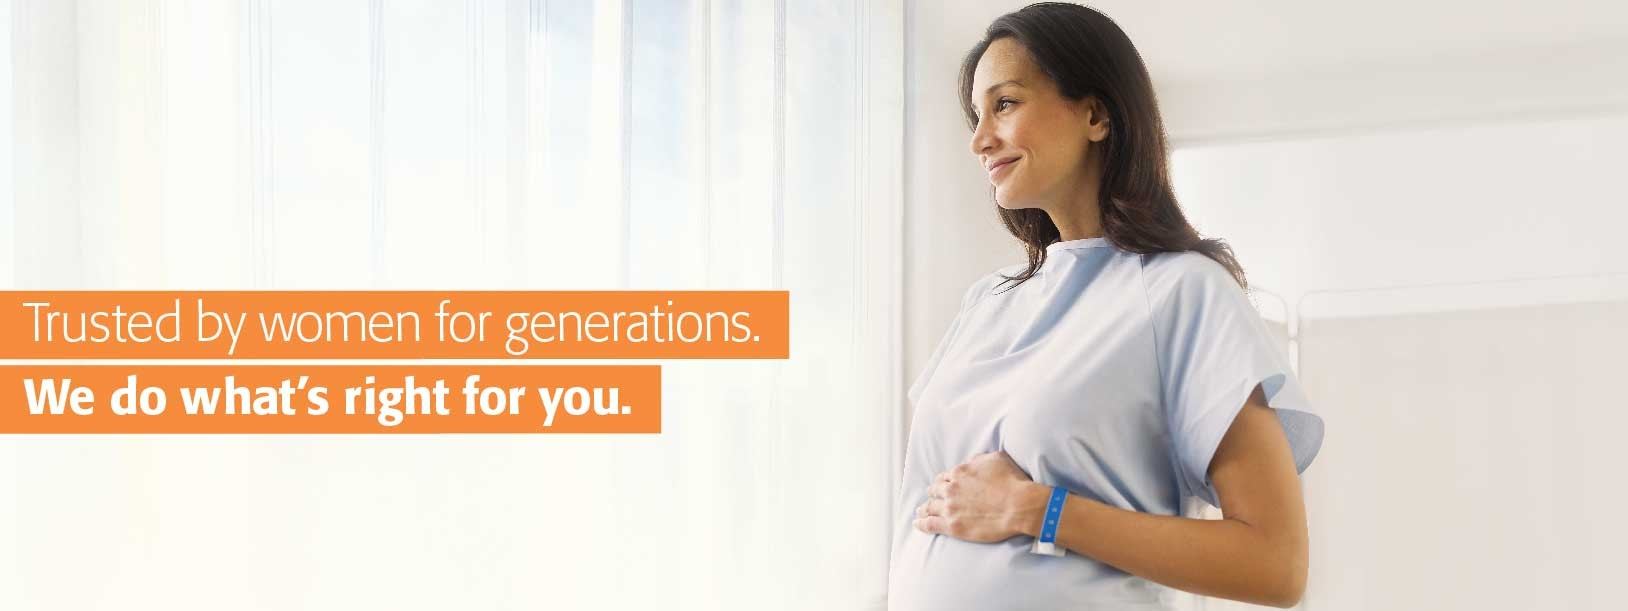 Trusted by women for generations. We do what's right for you.